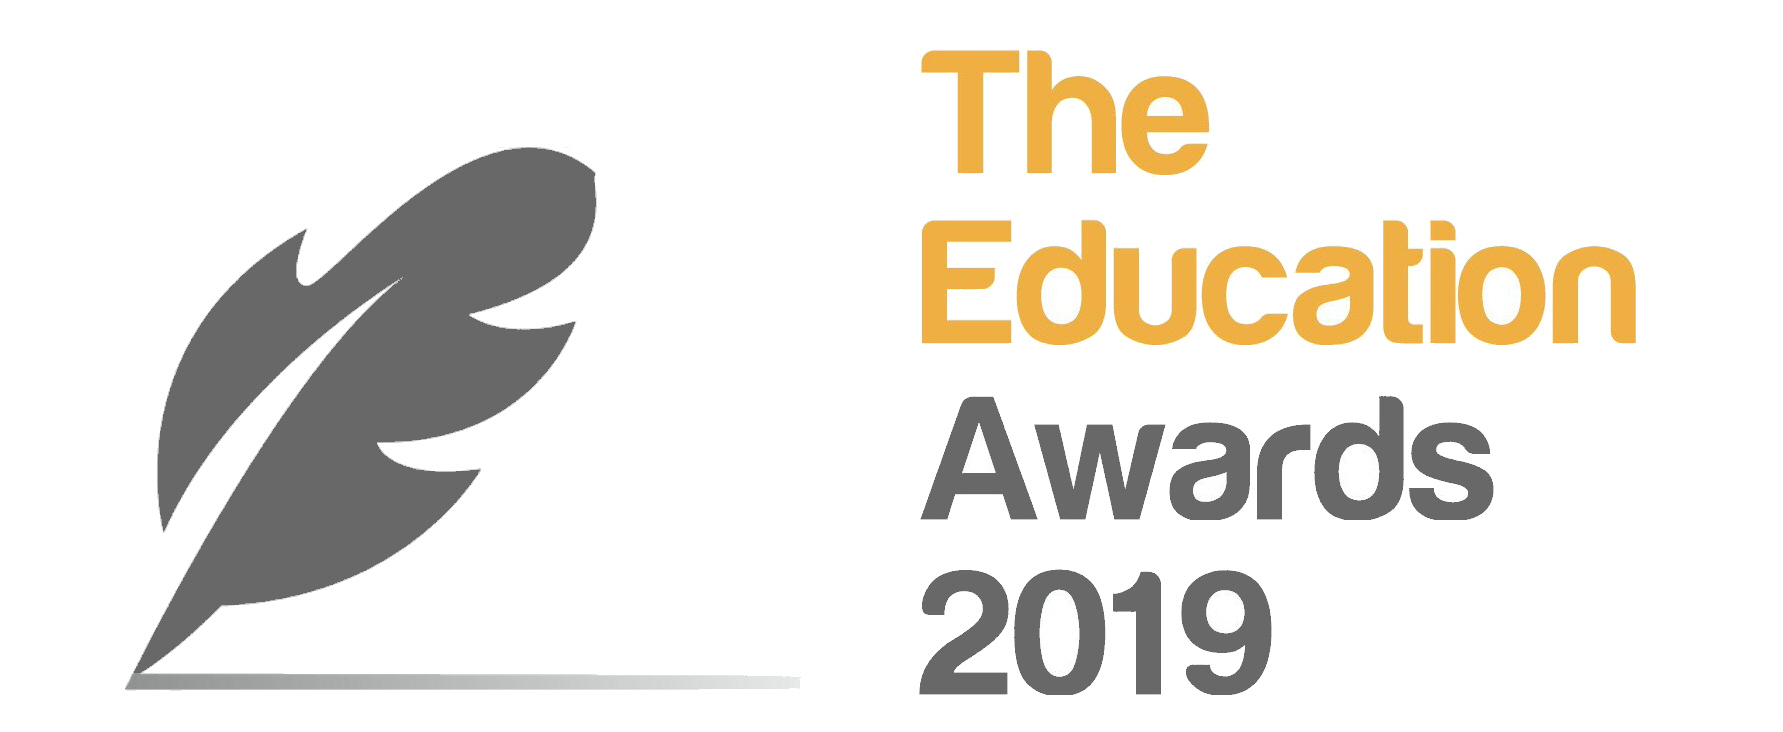 UCC shortlisted in Five Categories at The Education Awards 2019